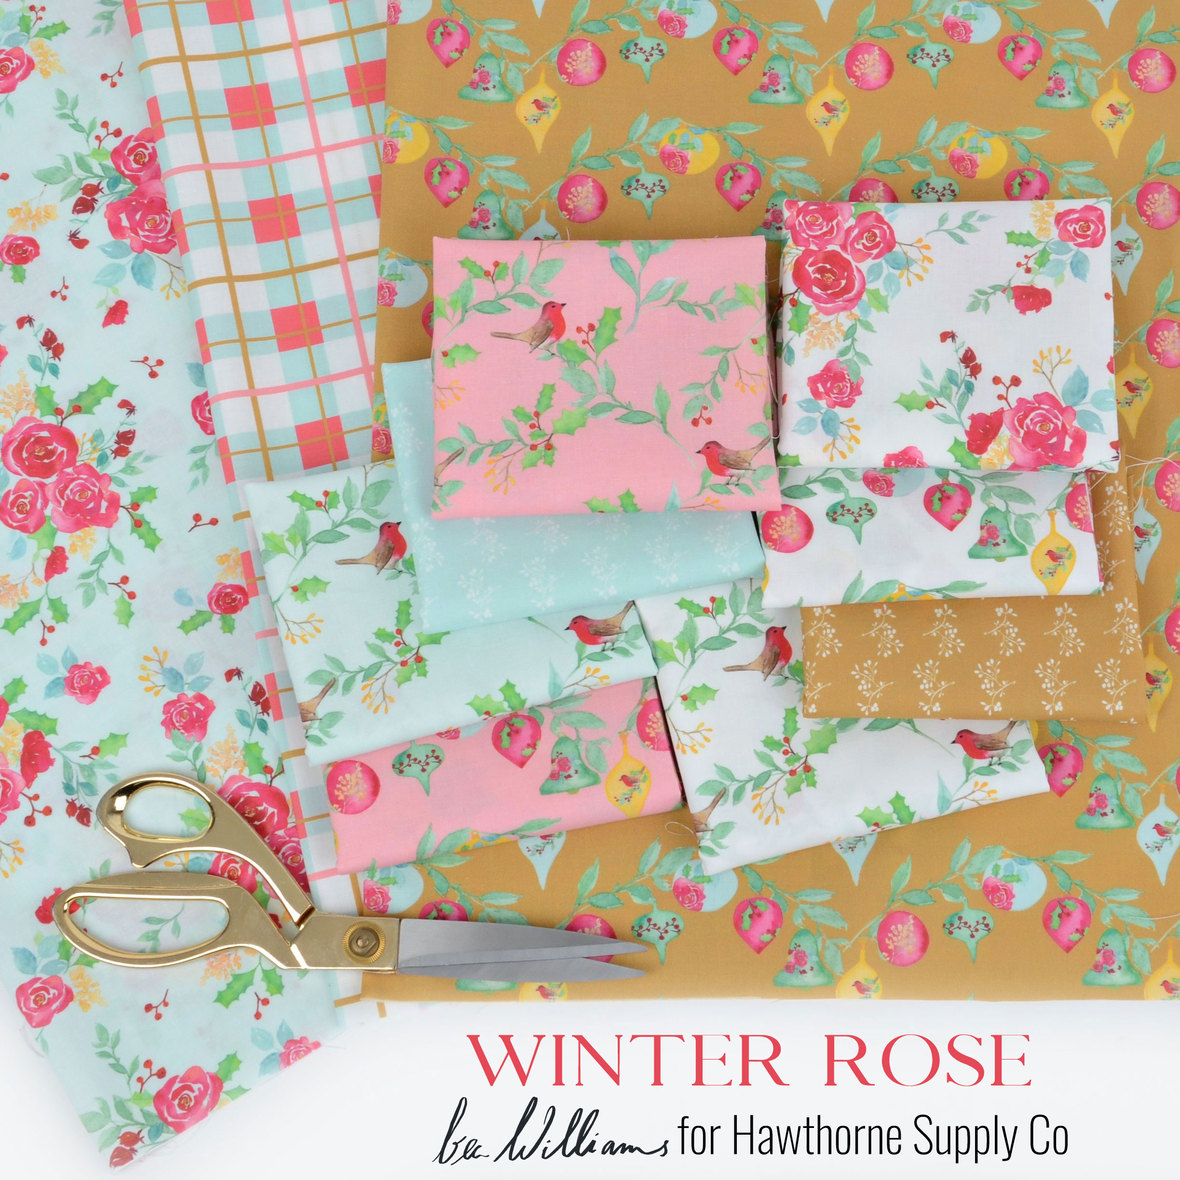 Winter-Rose-Fabric-Poster-Bec-Williams-for-Hawthorne-Supply-Co